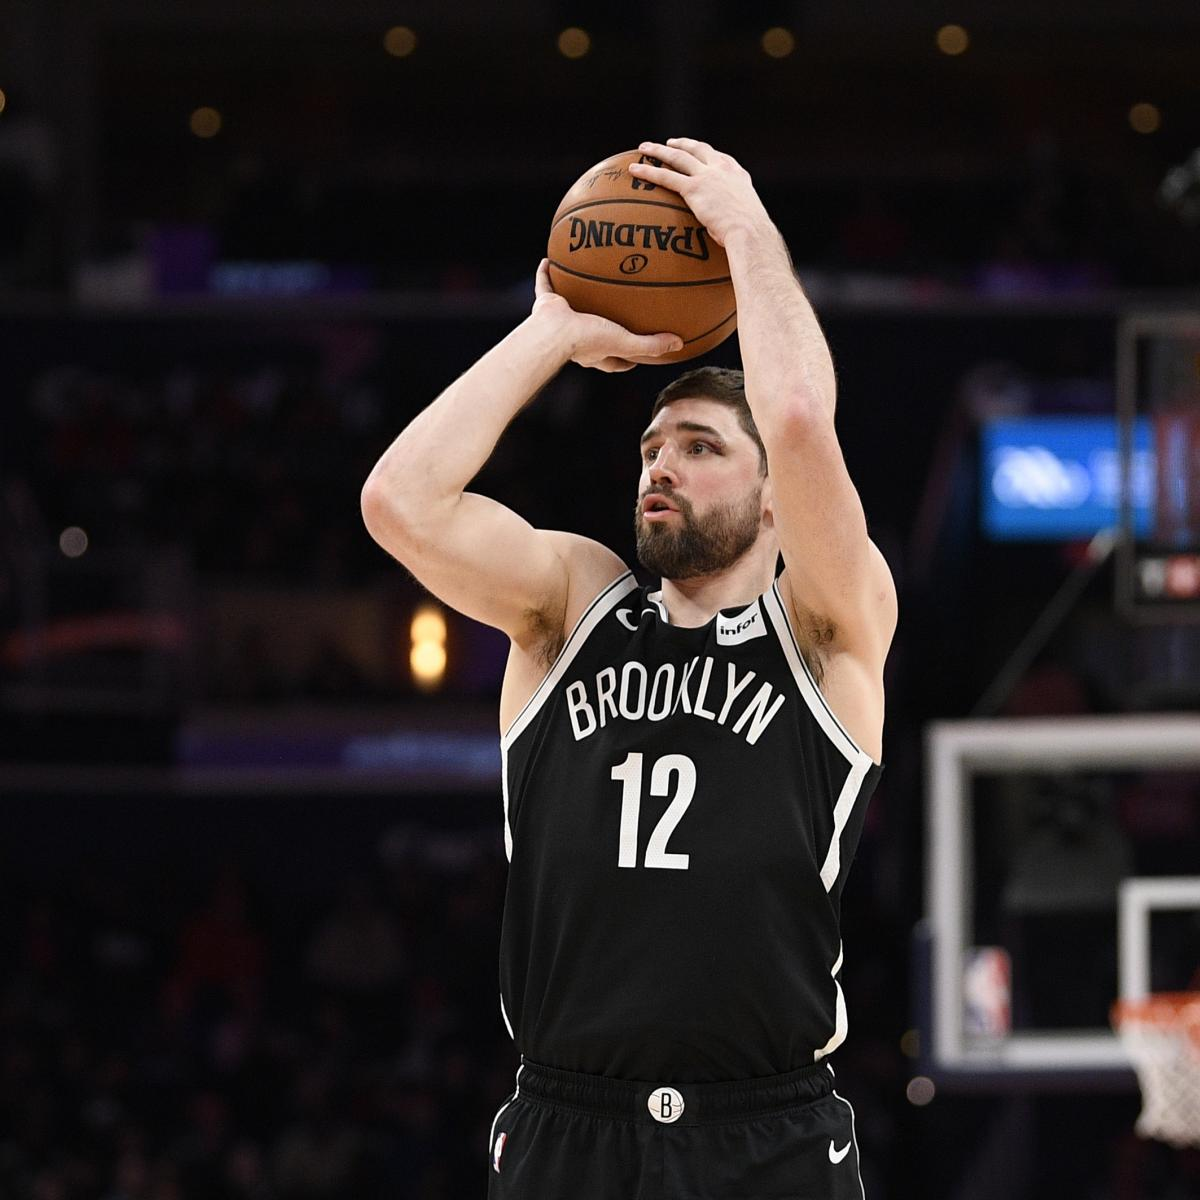 Joe Harris 'Definitely' Wants to Signs New Contract with Nets in Free Agency